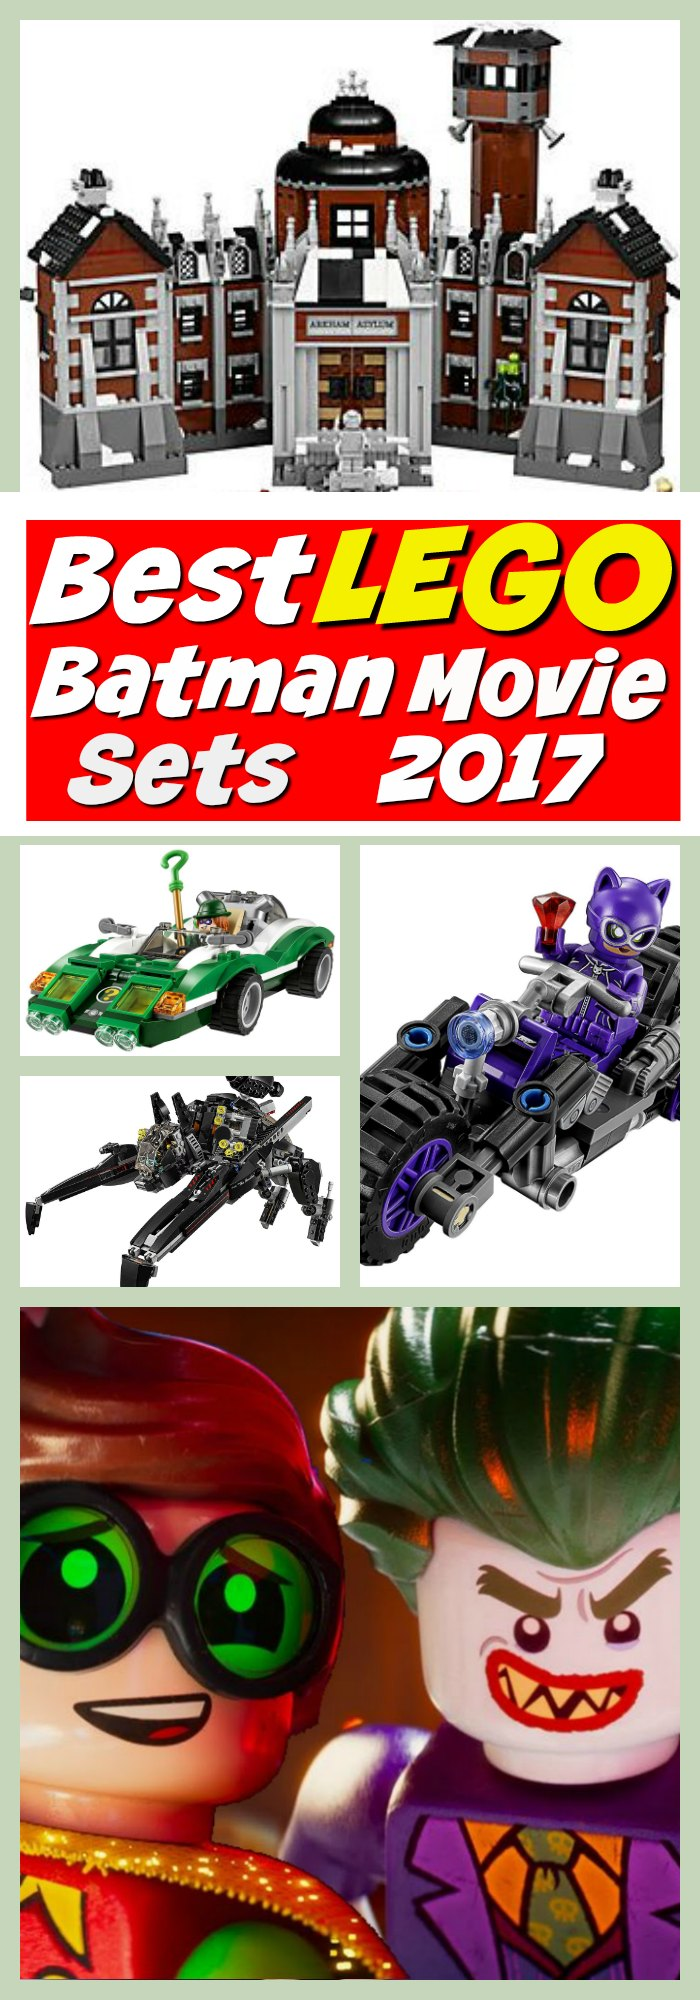 New Batman LEGO Sets | LEGO Batman Movie Sets 2017